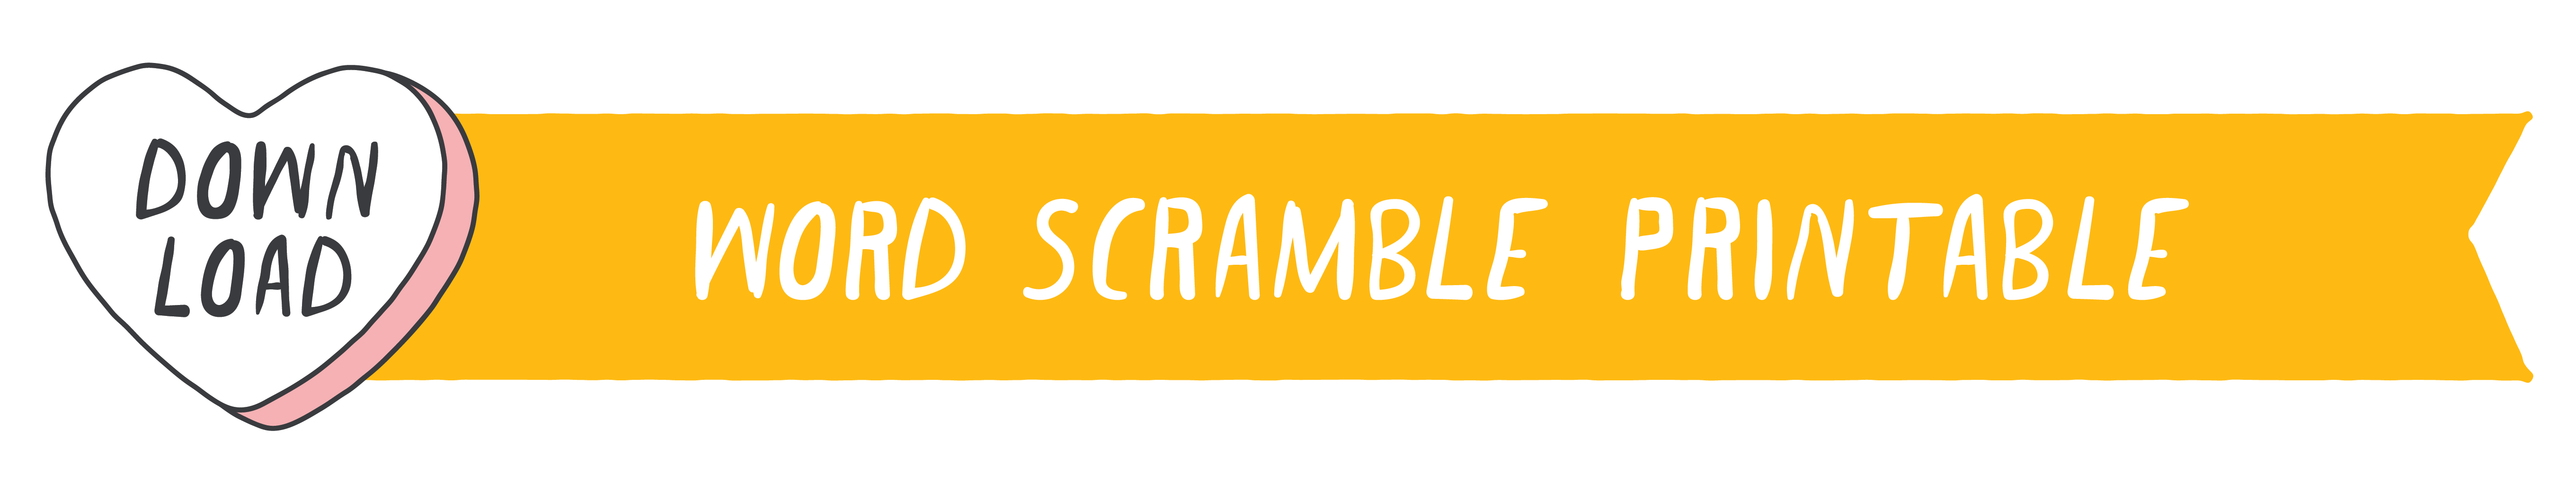 Valentine's Day Scramble Printable